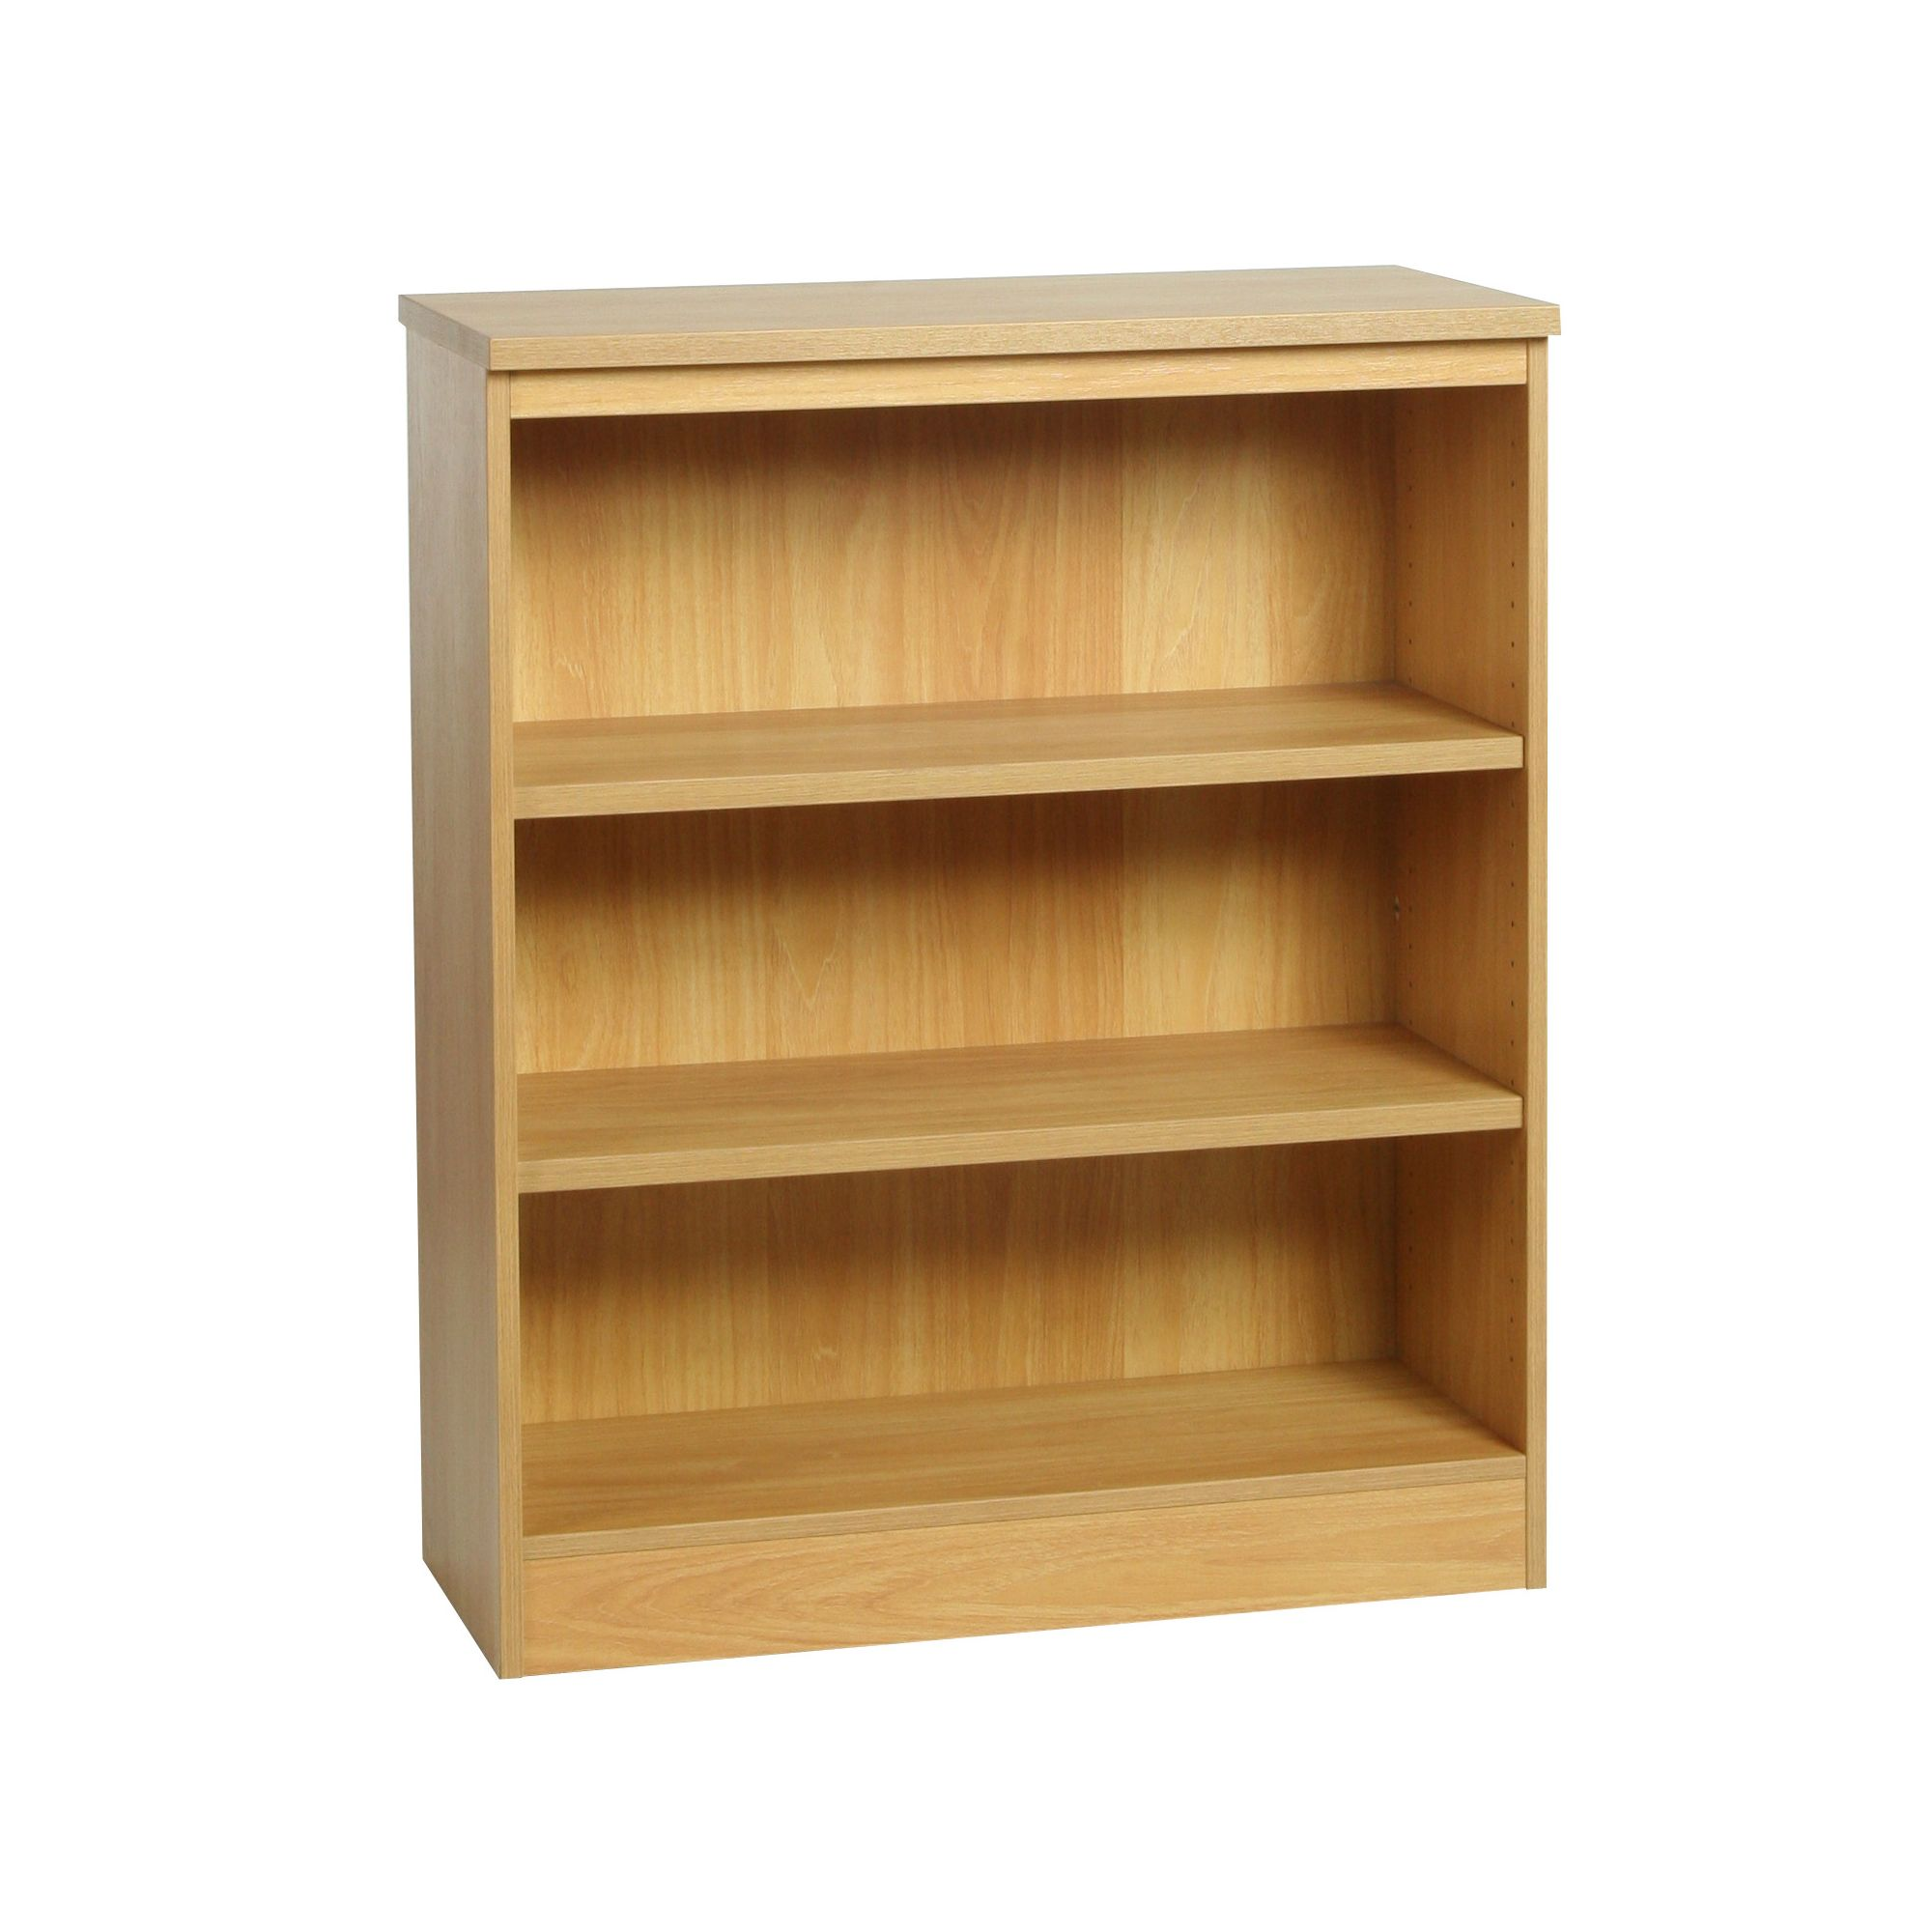 Enduro Three Shelf Wide Bookcase - Beech at Tesco Direct